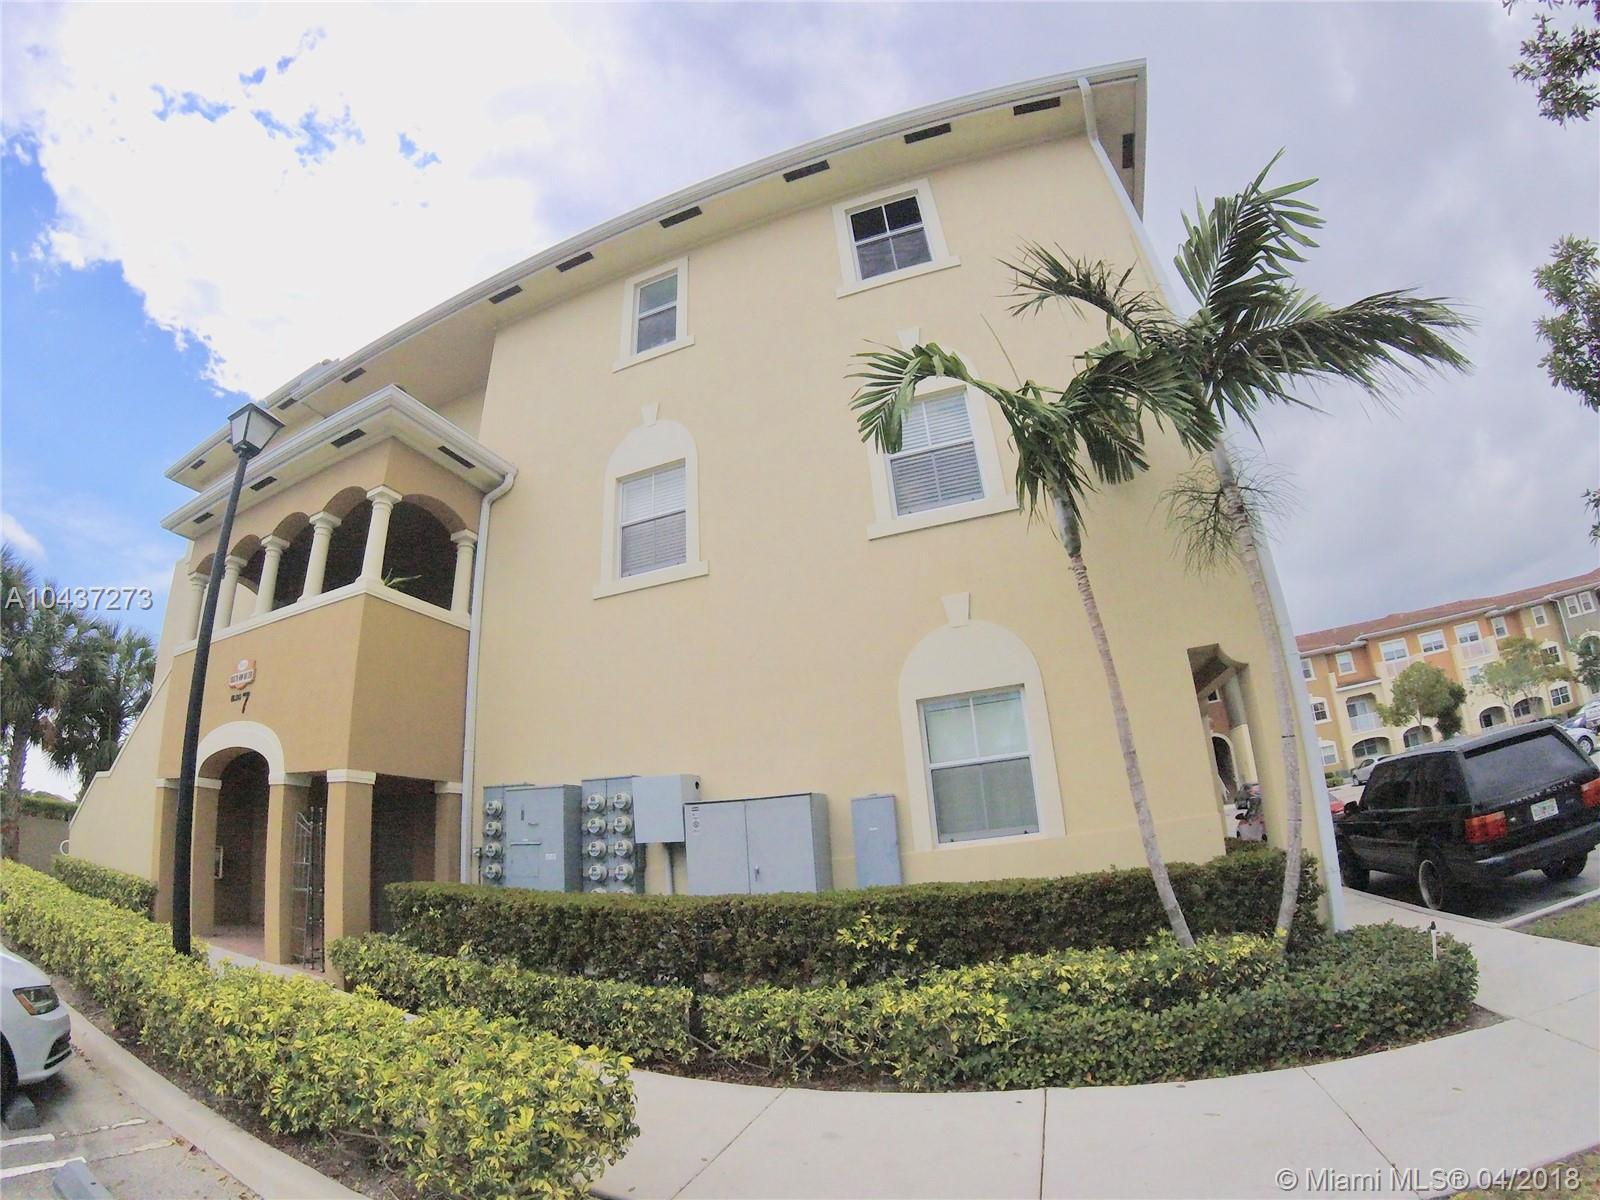 10870 NW 88th Ter #101 For Sale A10437273, FL